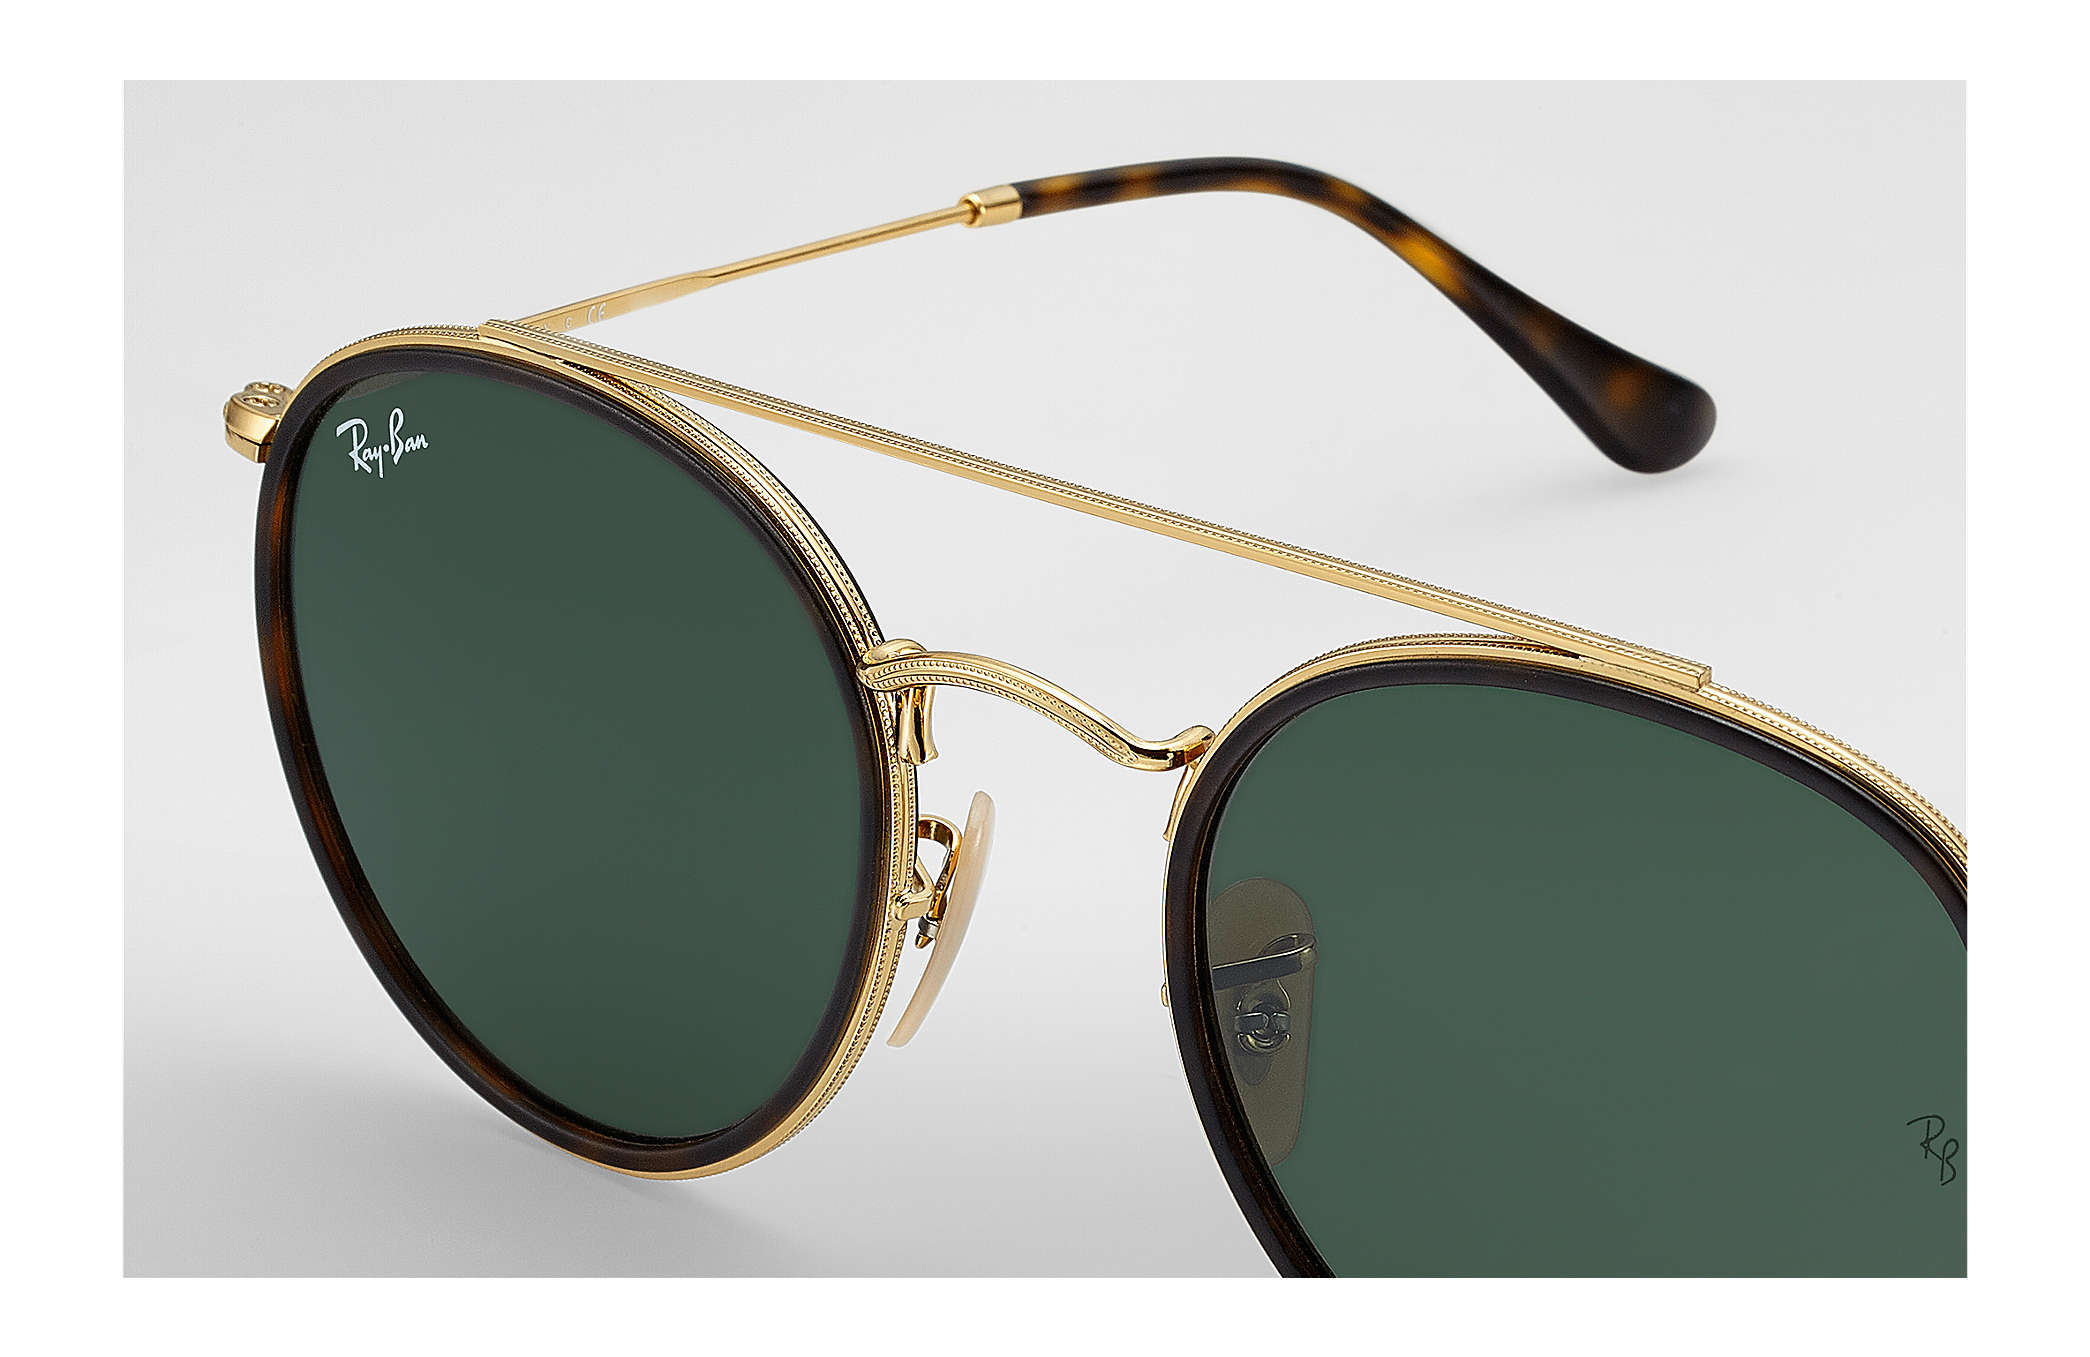 a2d77aa36 Ray-Ban Round Double Bridge RB3647N Gold - Metal - Green Lenses ...